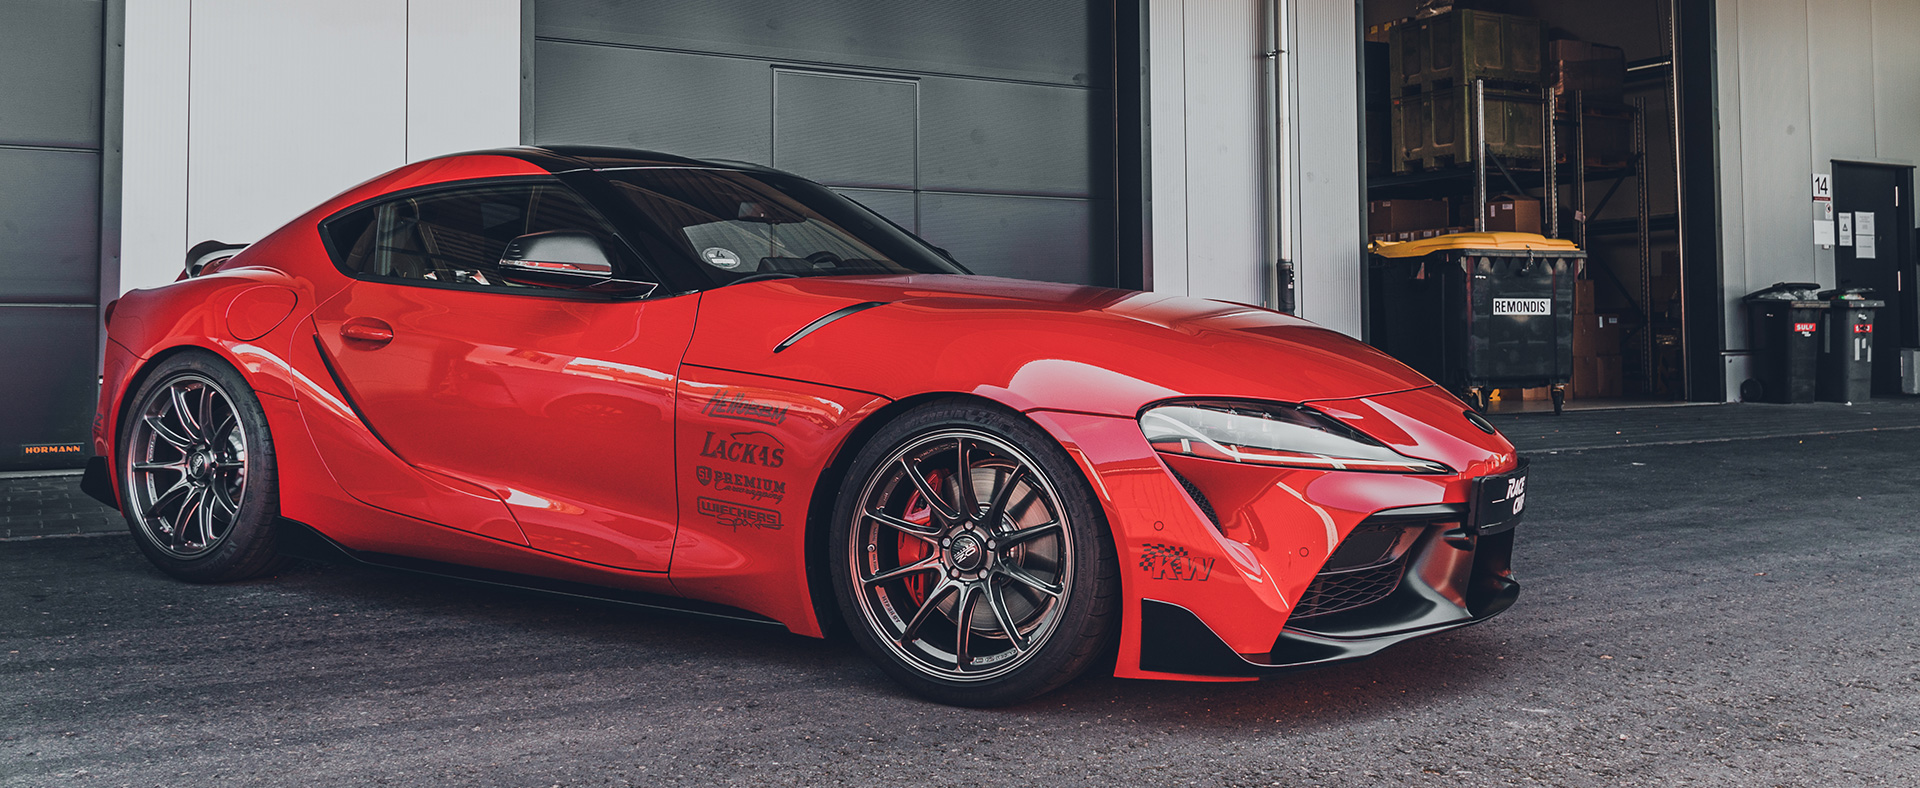 Mercedes AMG GT4 Coupé 63 S with 760 HP – Tuning, Dyno and 100-200 km/h